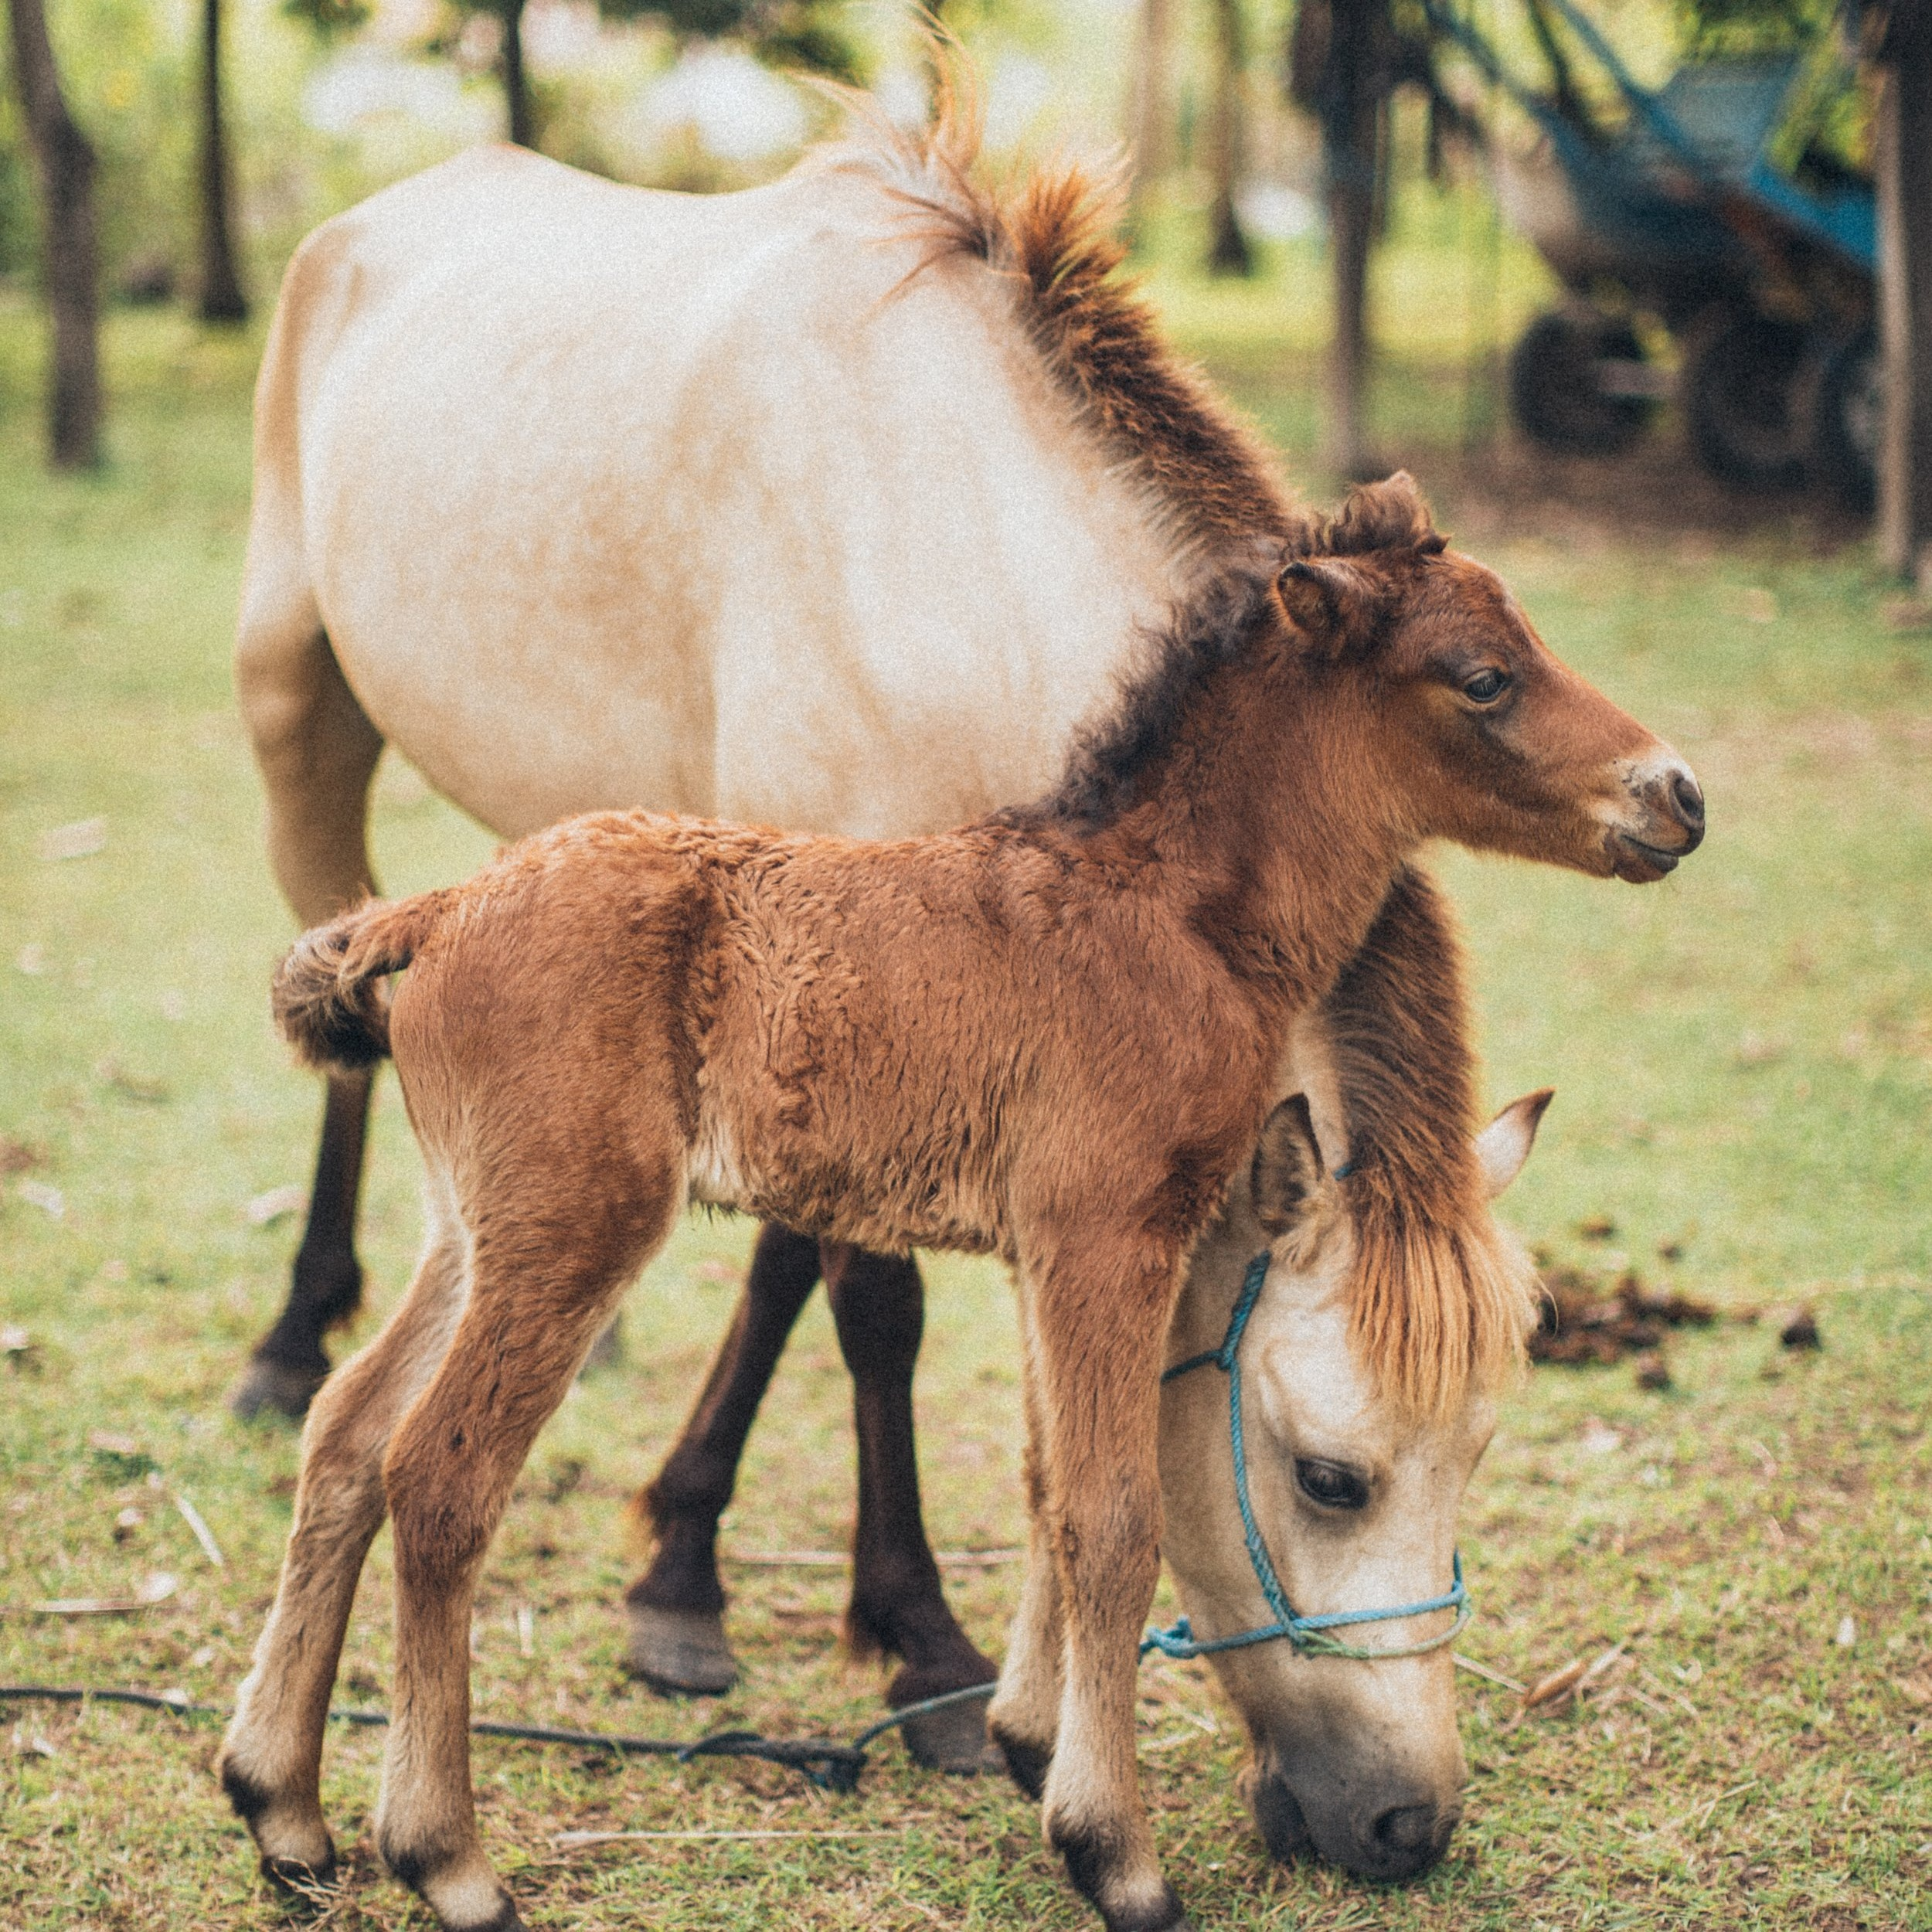 News - Horse News from Australia and around the world. Horse health, welfare, research, biosecurity, horse industry and training news.